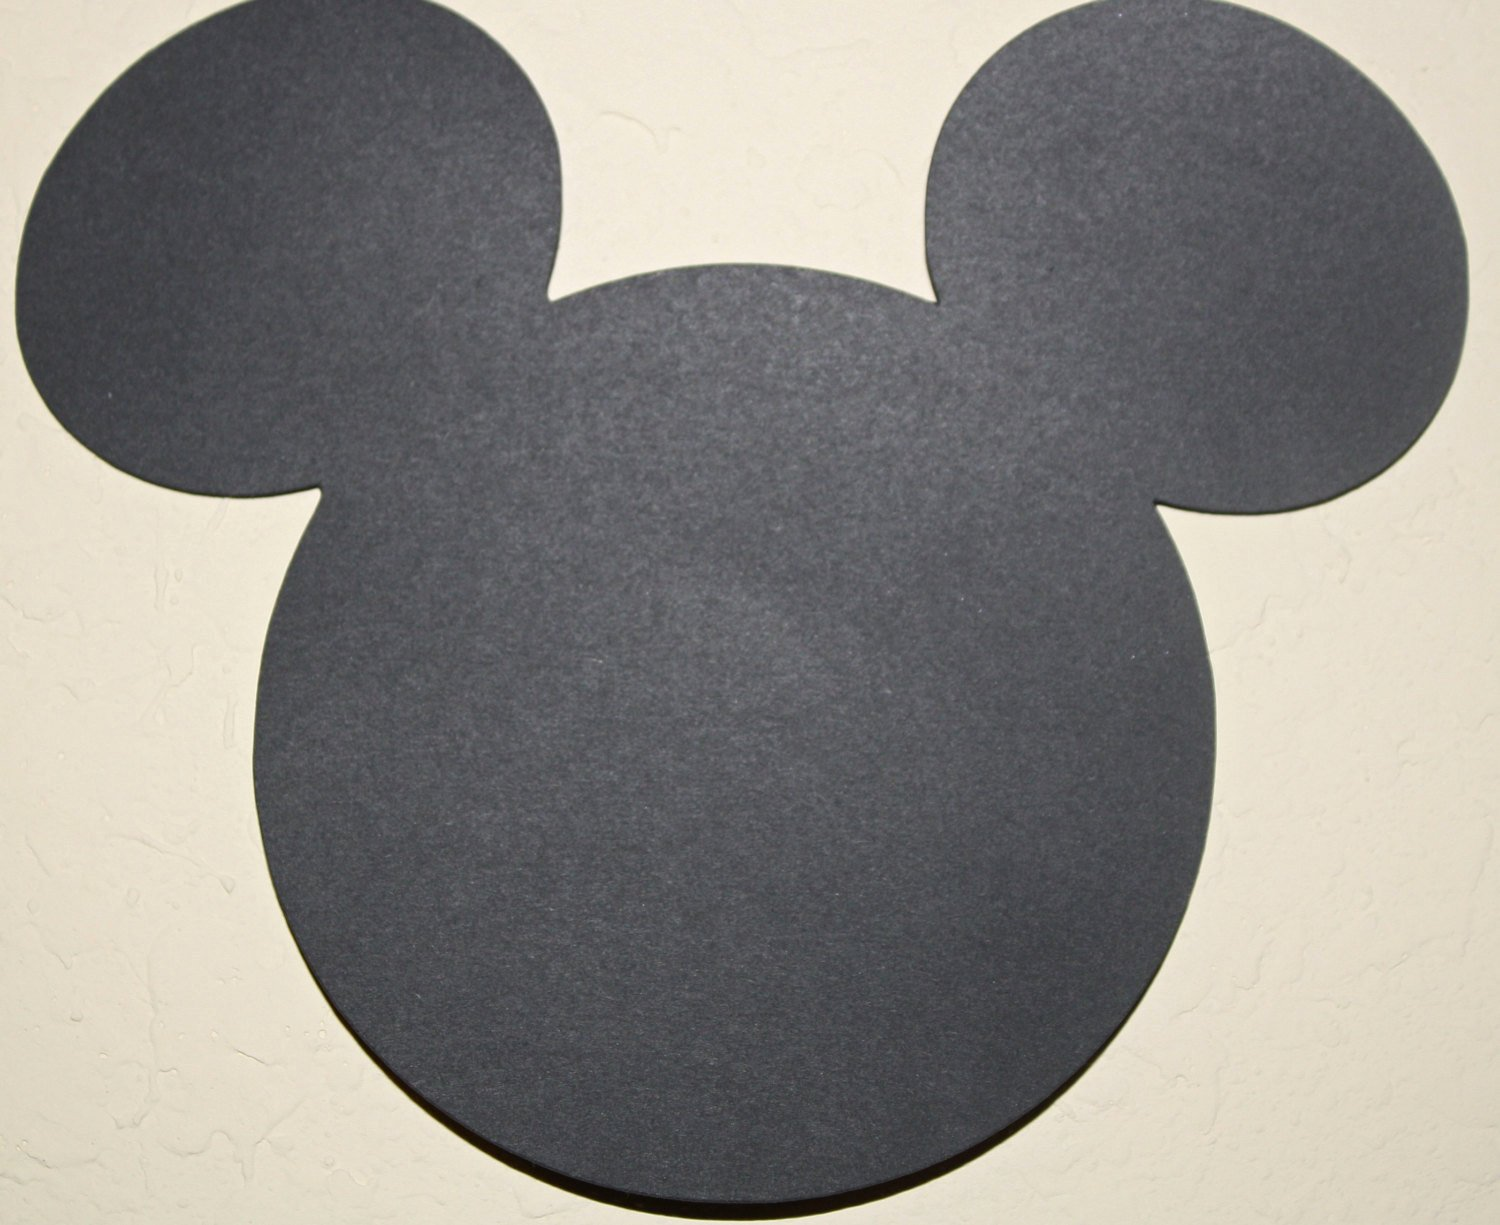 Minnie Mouse Cut Out Head Unique Mickey Mouse Head Die Cut Out 5 5 Inches Perfect for